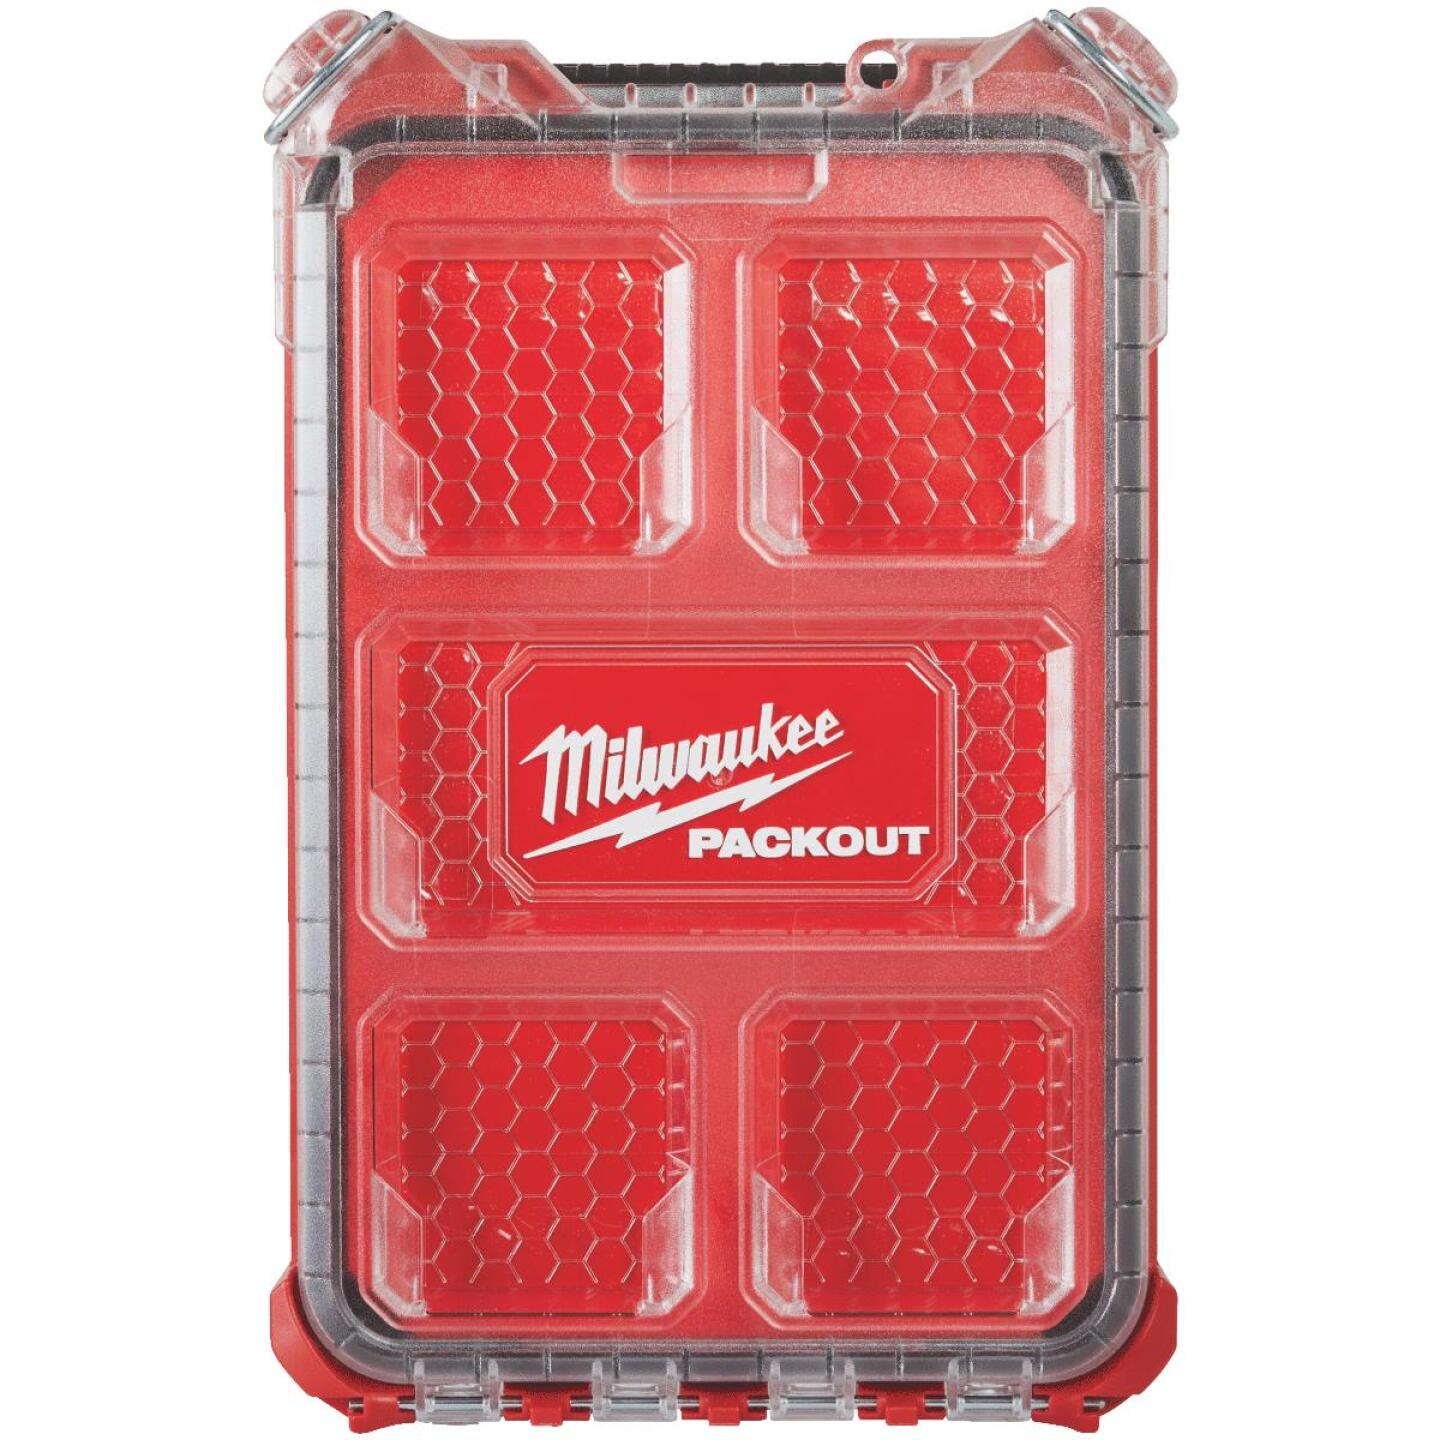 Milwaukee PACKOUT 9.75 In. W x 4.50 In. H x 15.25 In. L Compact Small Parts Organizer with 5 Bins Image 2